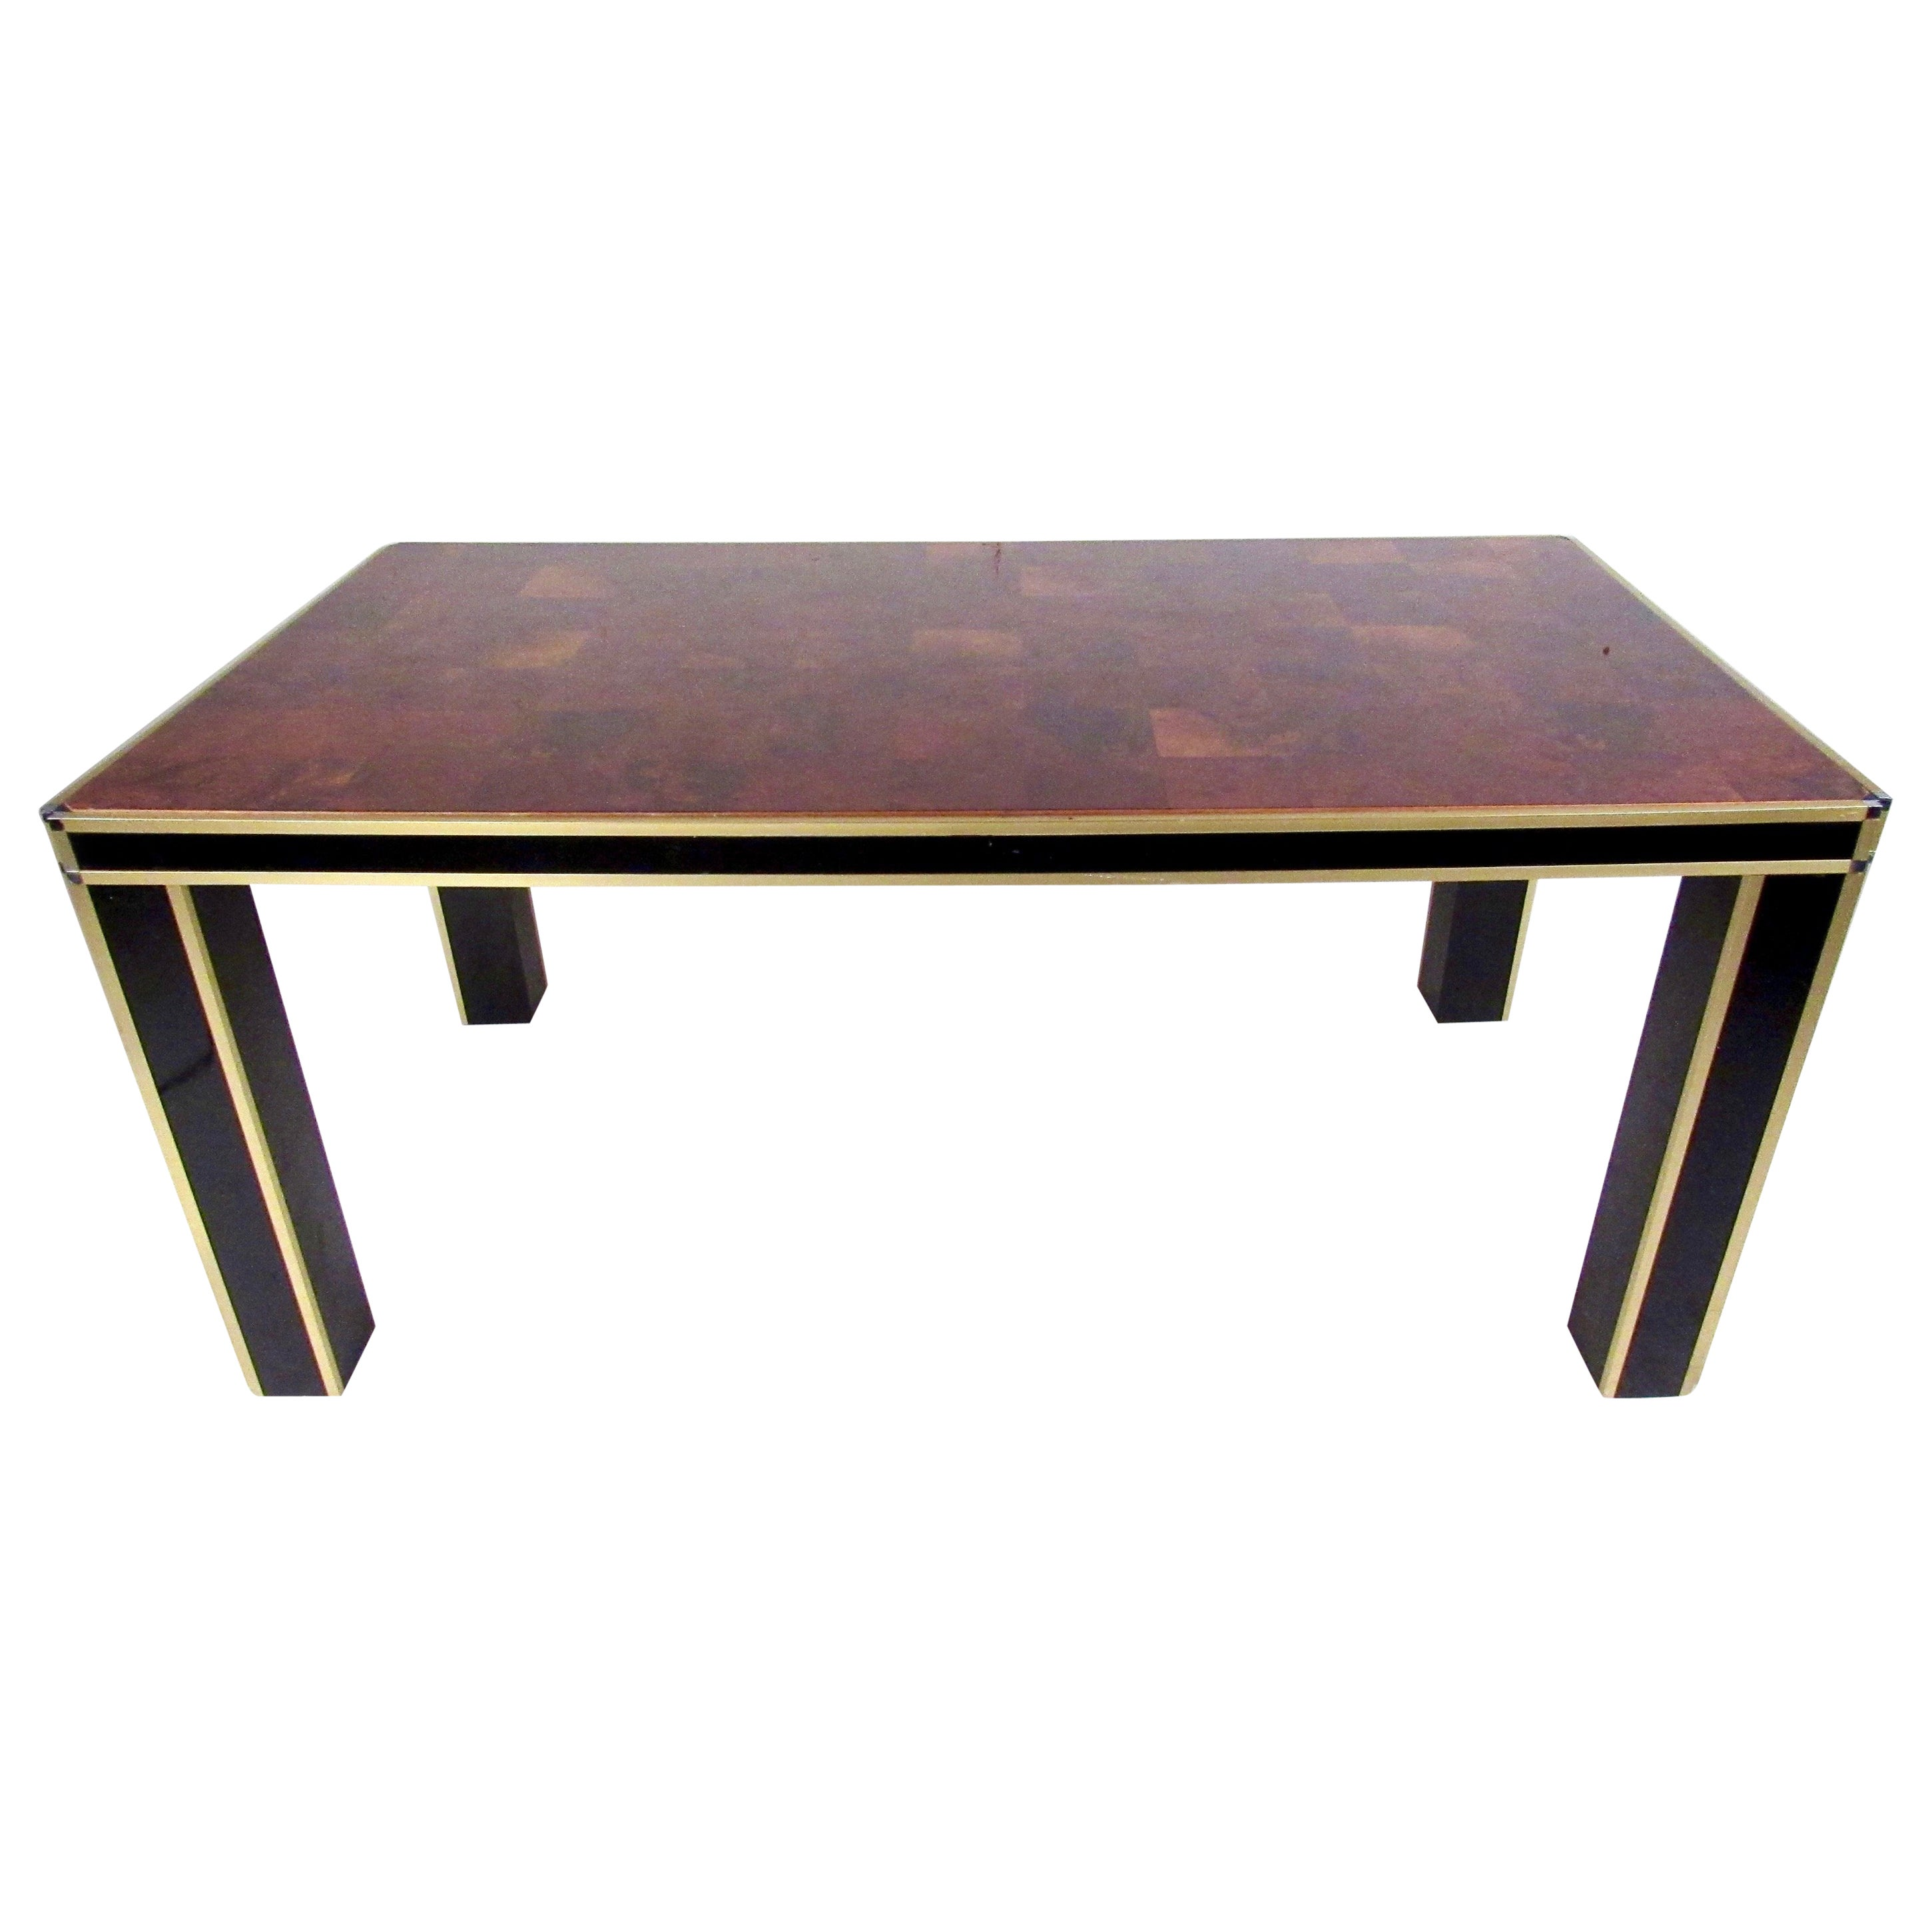 Italian Modern Conference or Dining Table